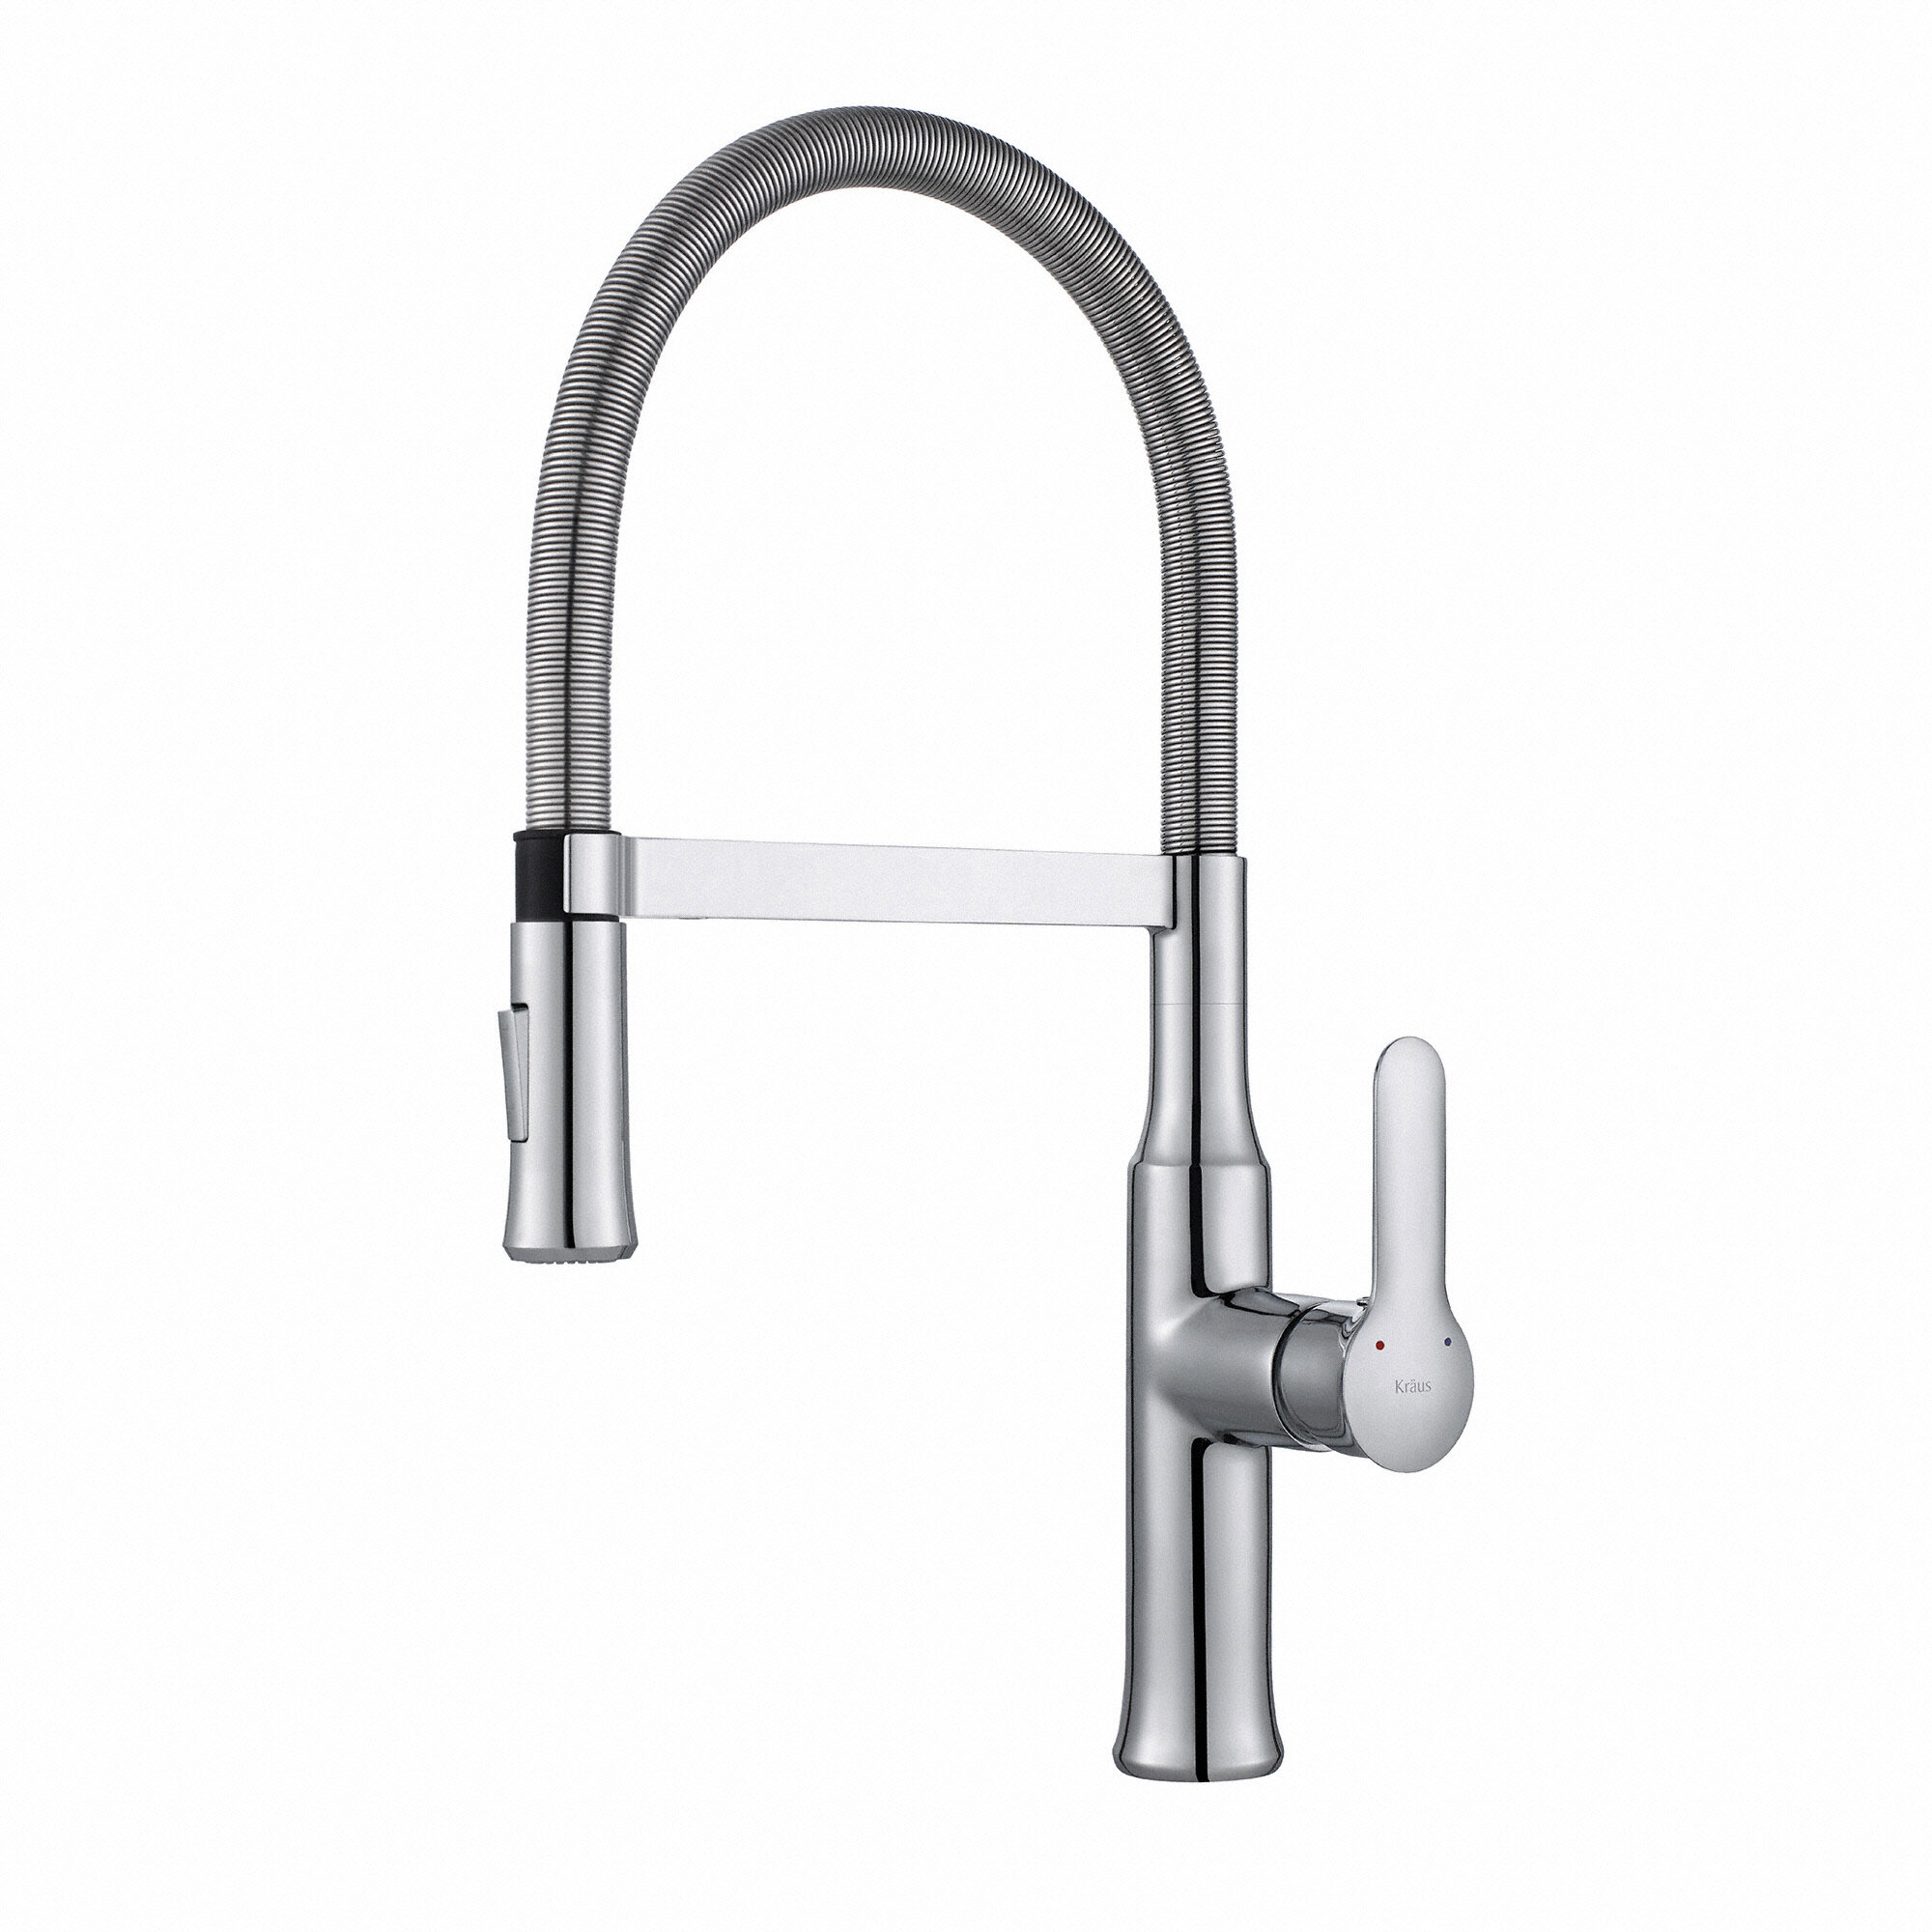 Kraus Nola Pull Down Single Handle Kitchen Faucet & Reviews